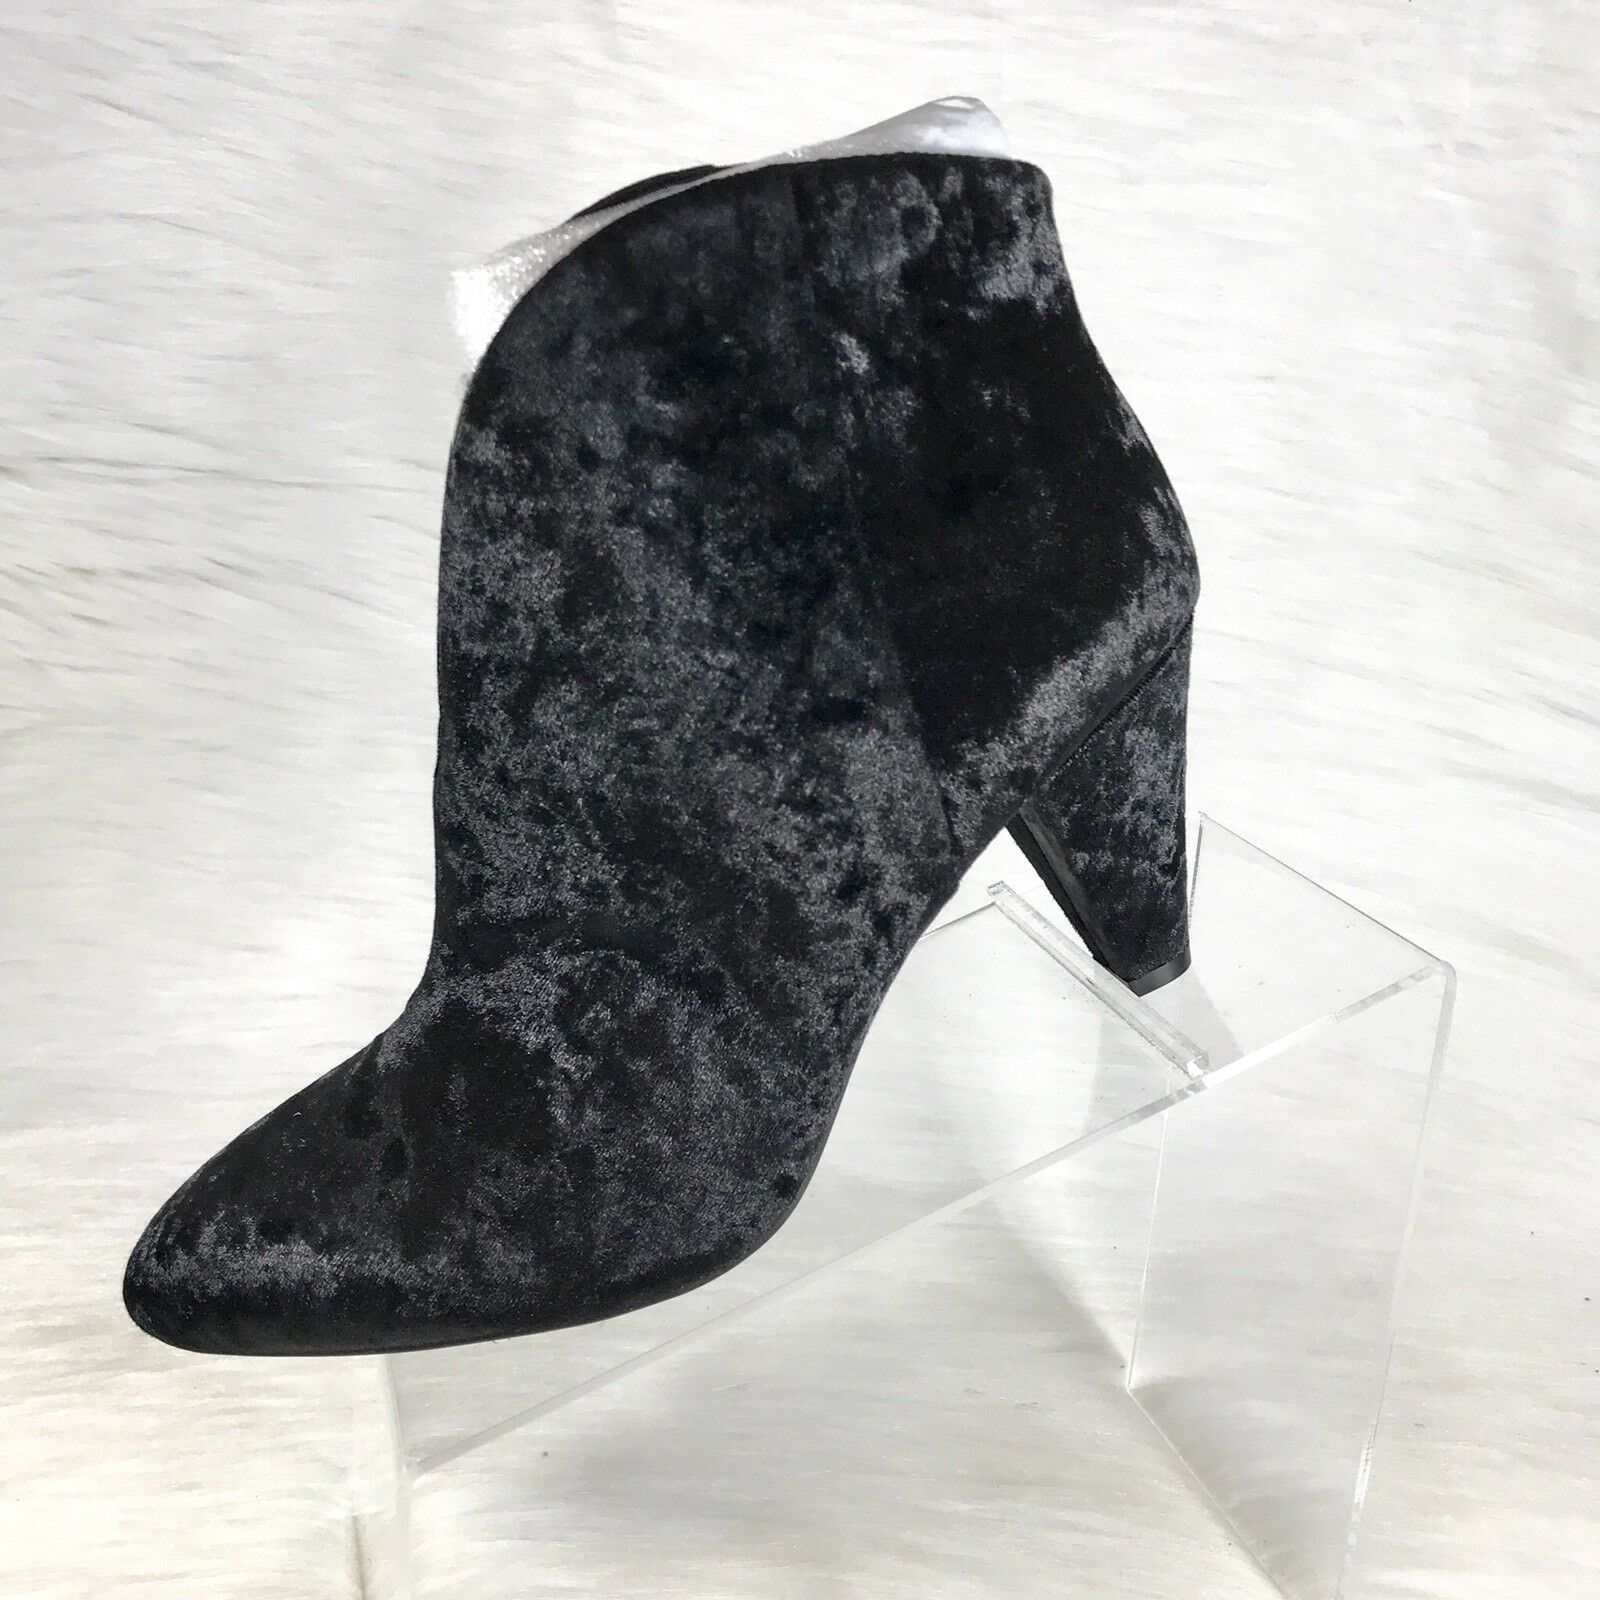 Vince Camuto Evanata Ankle Boots Booties Black Velvet Crushed Size 10 W NEW